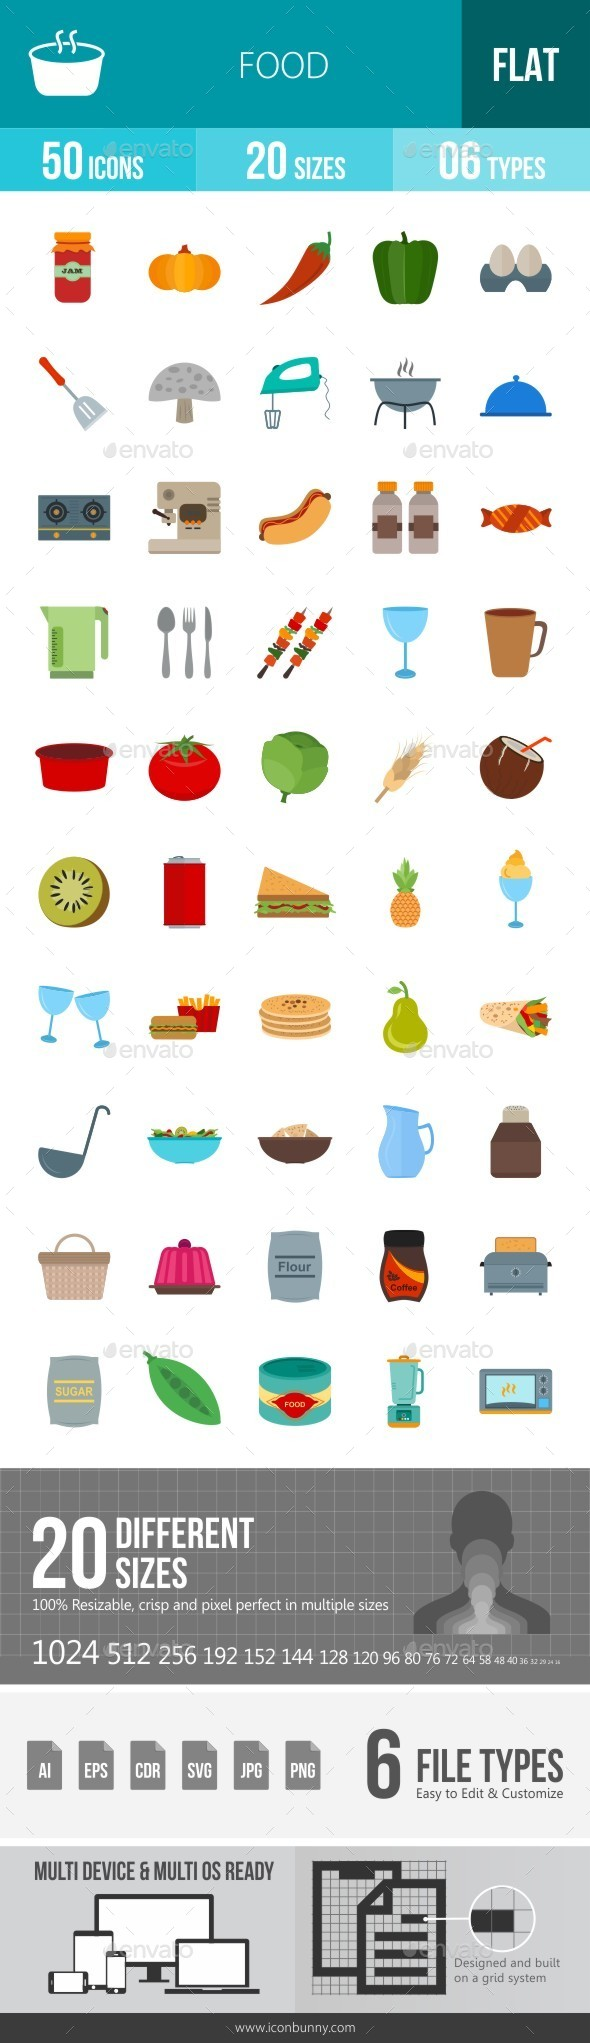 Food Flat Multicolor Icons - Icons